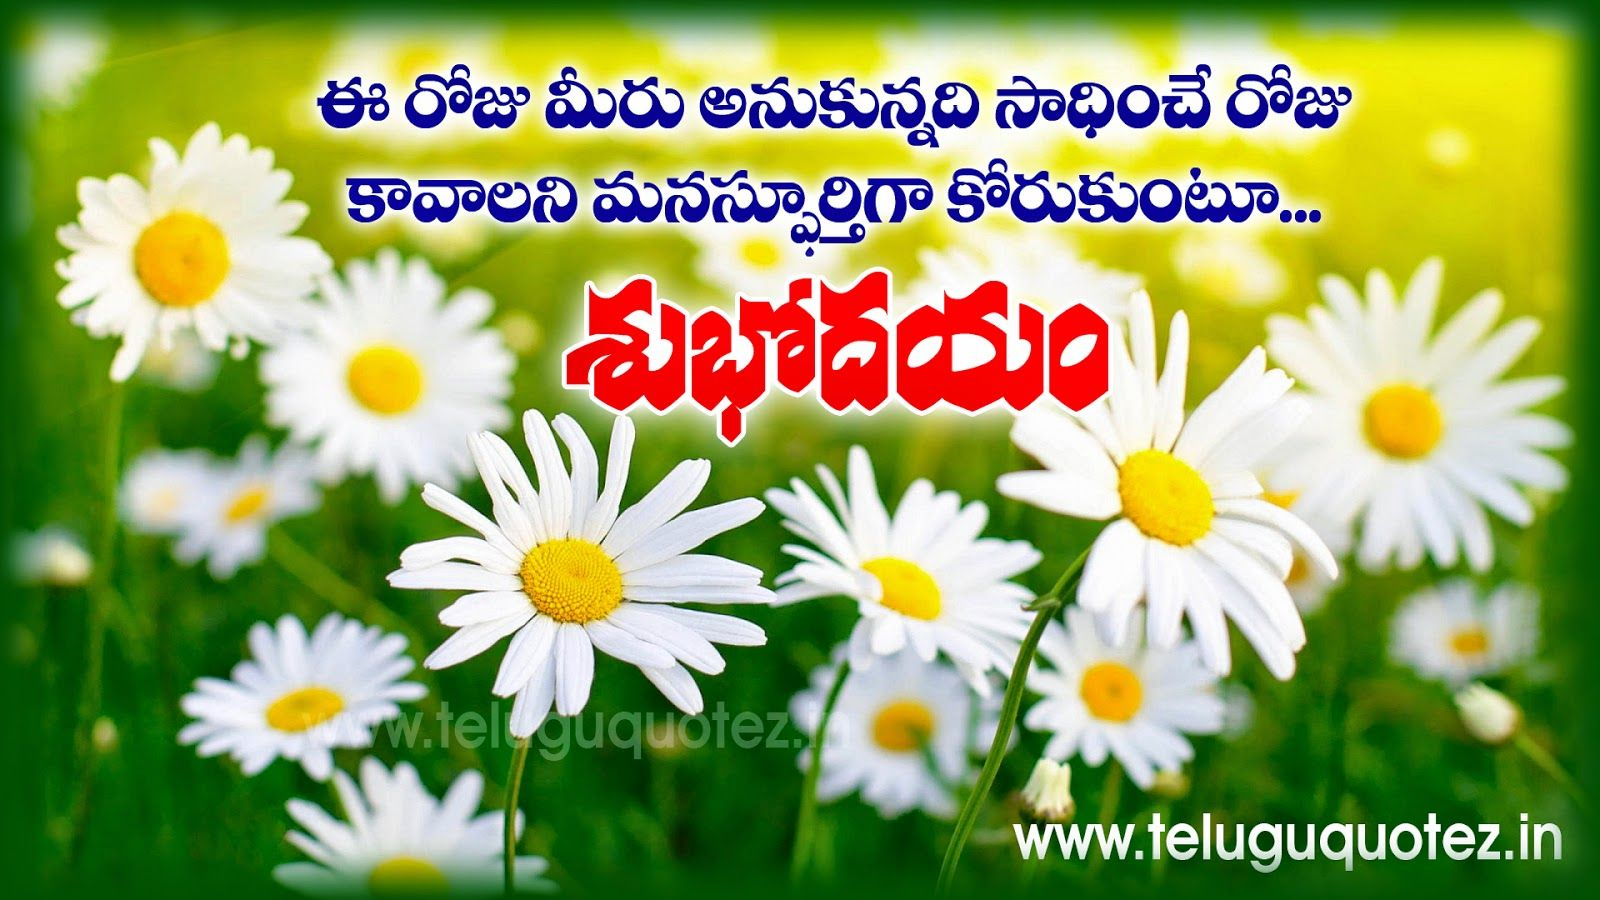 Good Morning Telugu Thoughts And Quotesqith Nice Pictures Beautiful Flowers Pictures Flower Pictures White Flowers